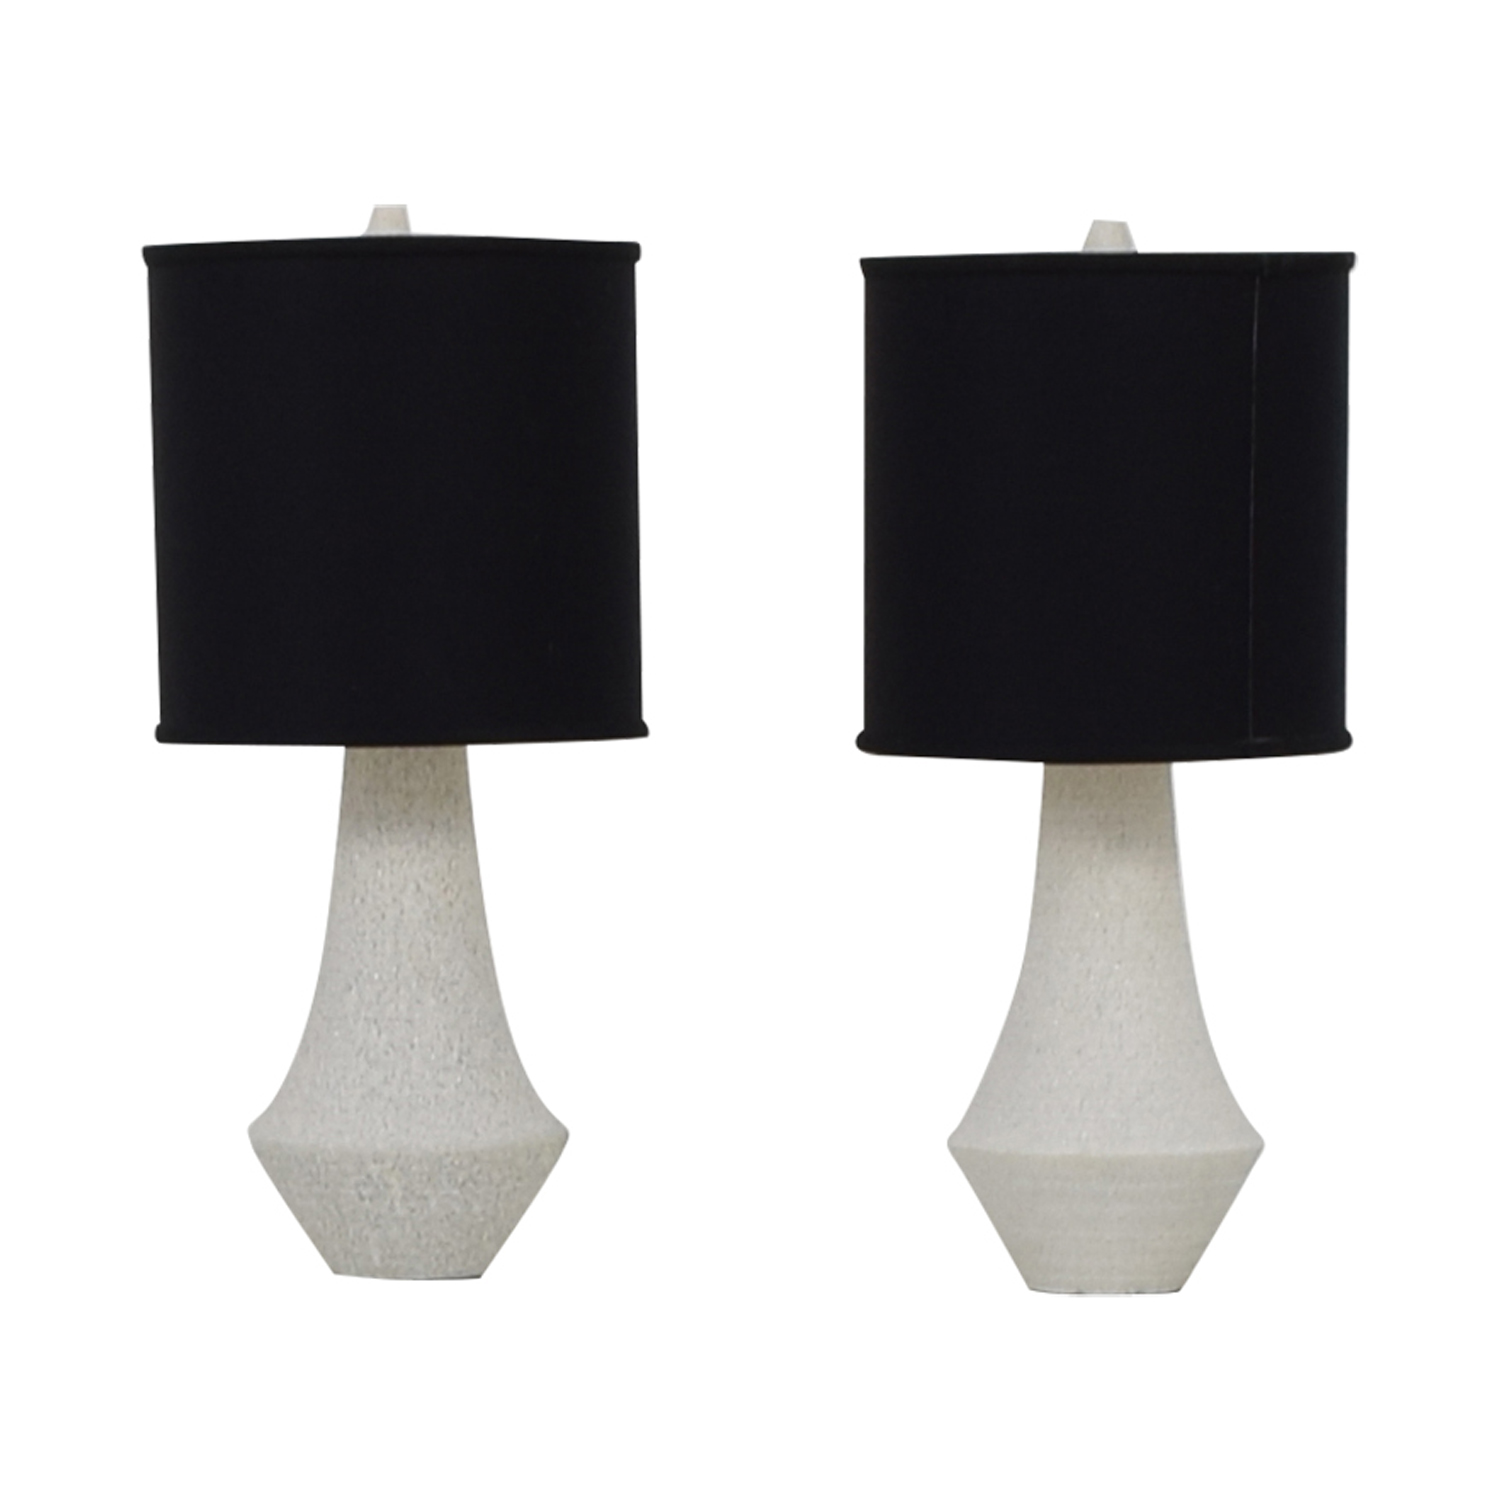 Serena & Lily Serena & Lily White & Black Table Lamp price